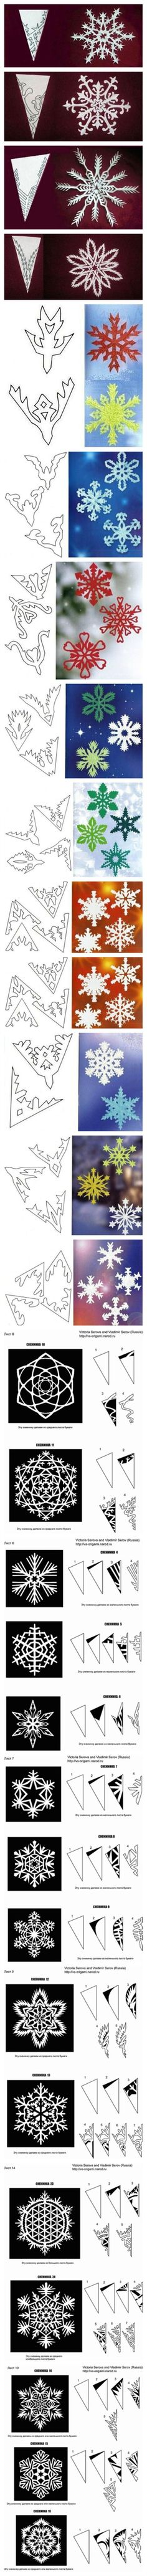 A  snowflake paper cutting tutorial. These are amazing!